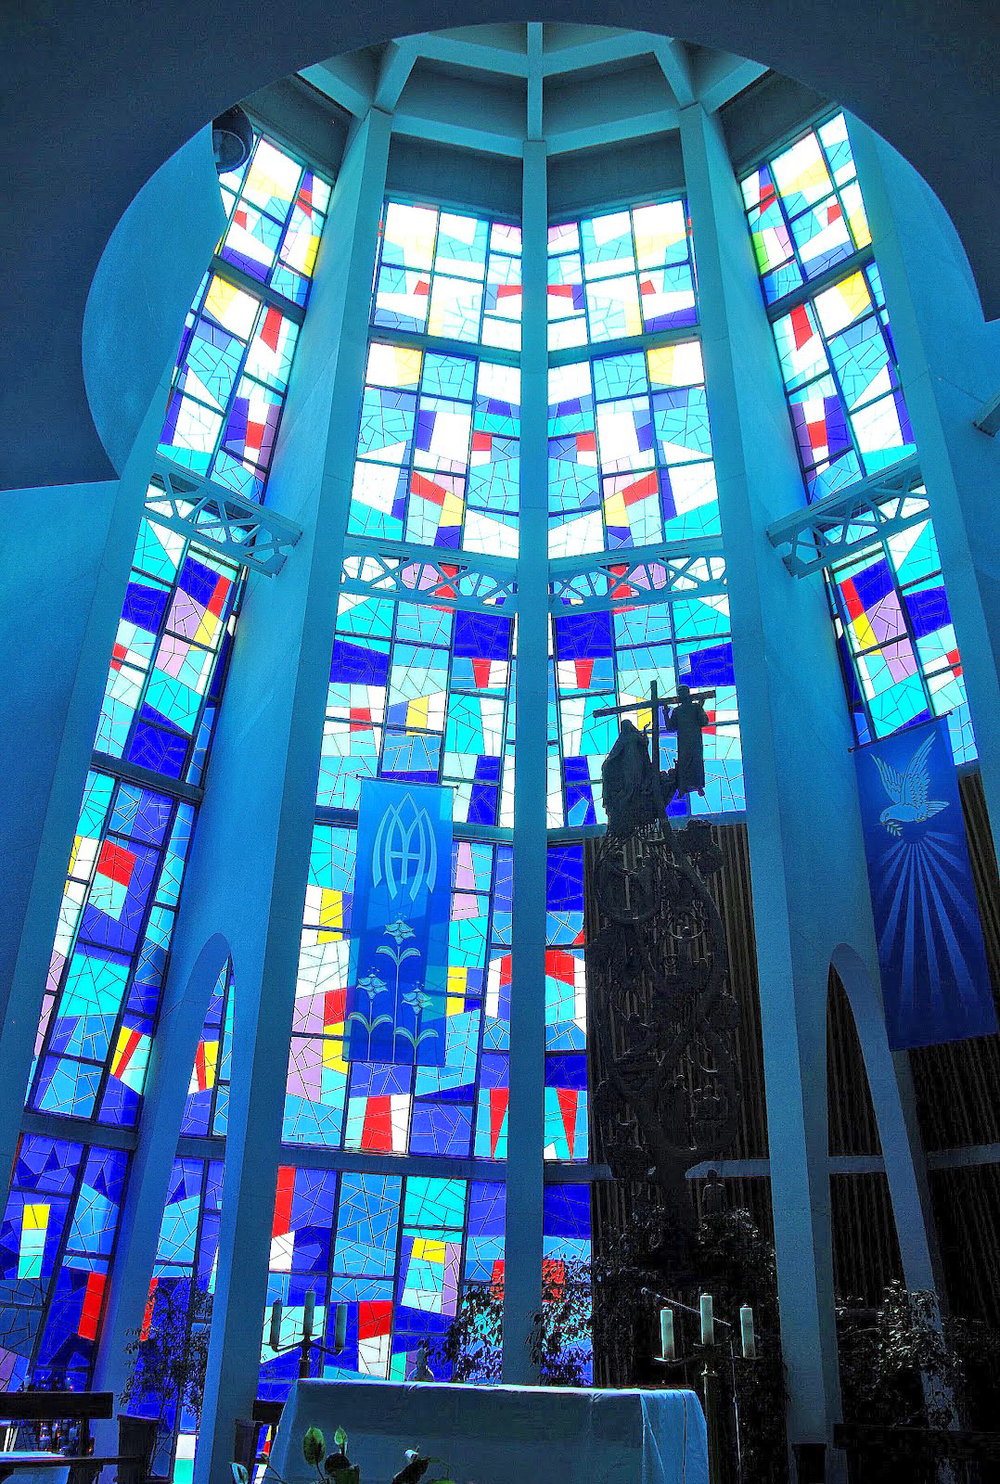 In 1964, the newly completed Shrine church with its 100 foot stained glass tower was recognized for the poetry of its conception and the quality of its acoustics. Click on the image for a larger view. Photo: Barry Wallace